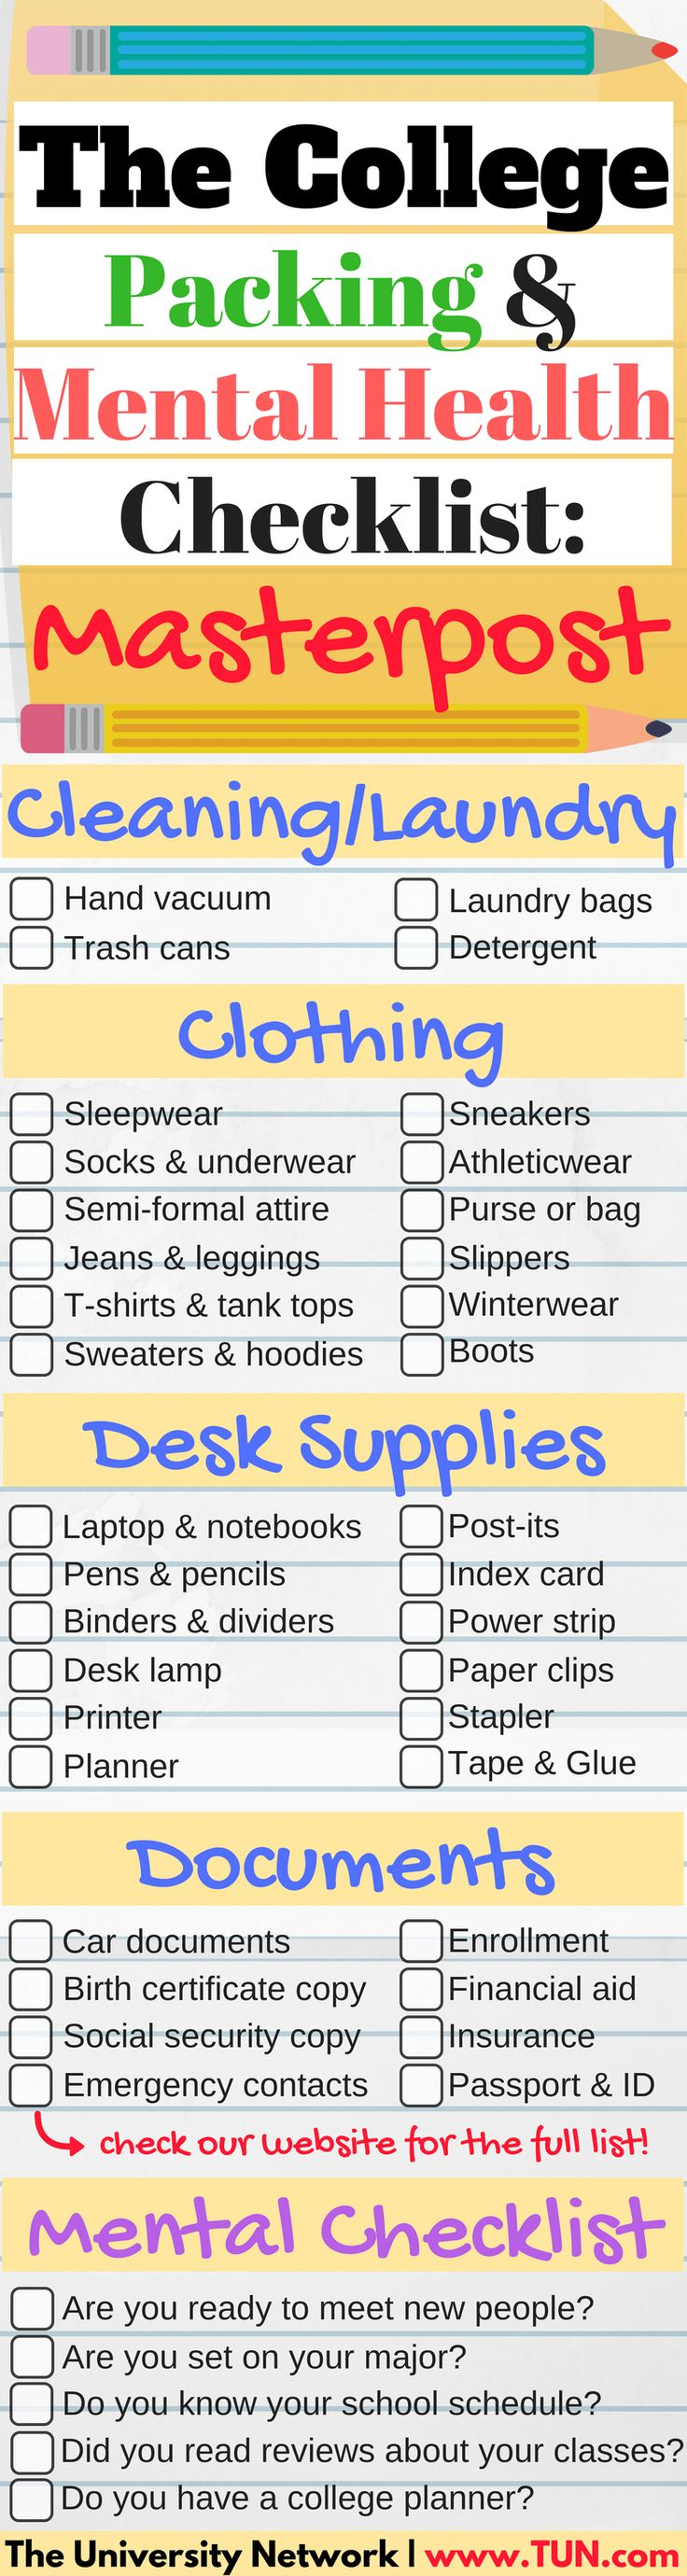 Before you start packing for college, make sure you know WHAT to pack and what NOT to pack! Save time and money!